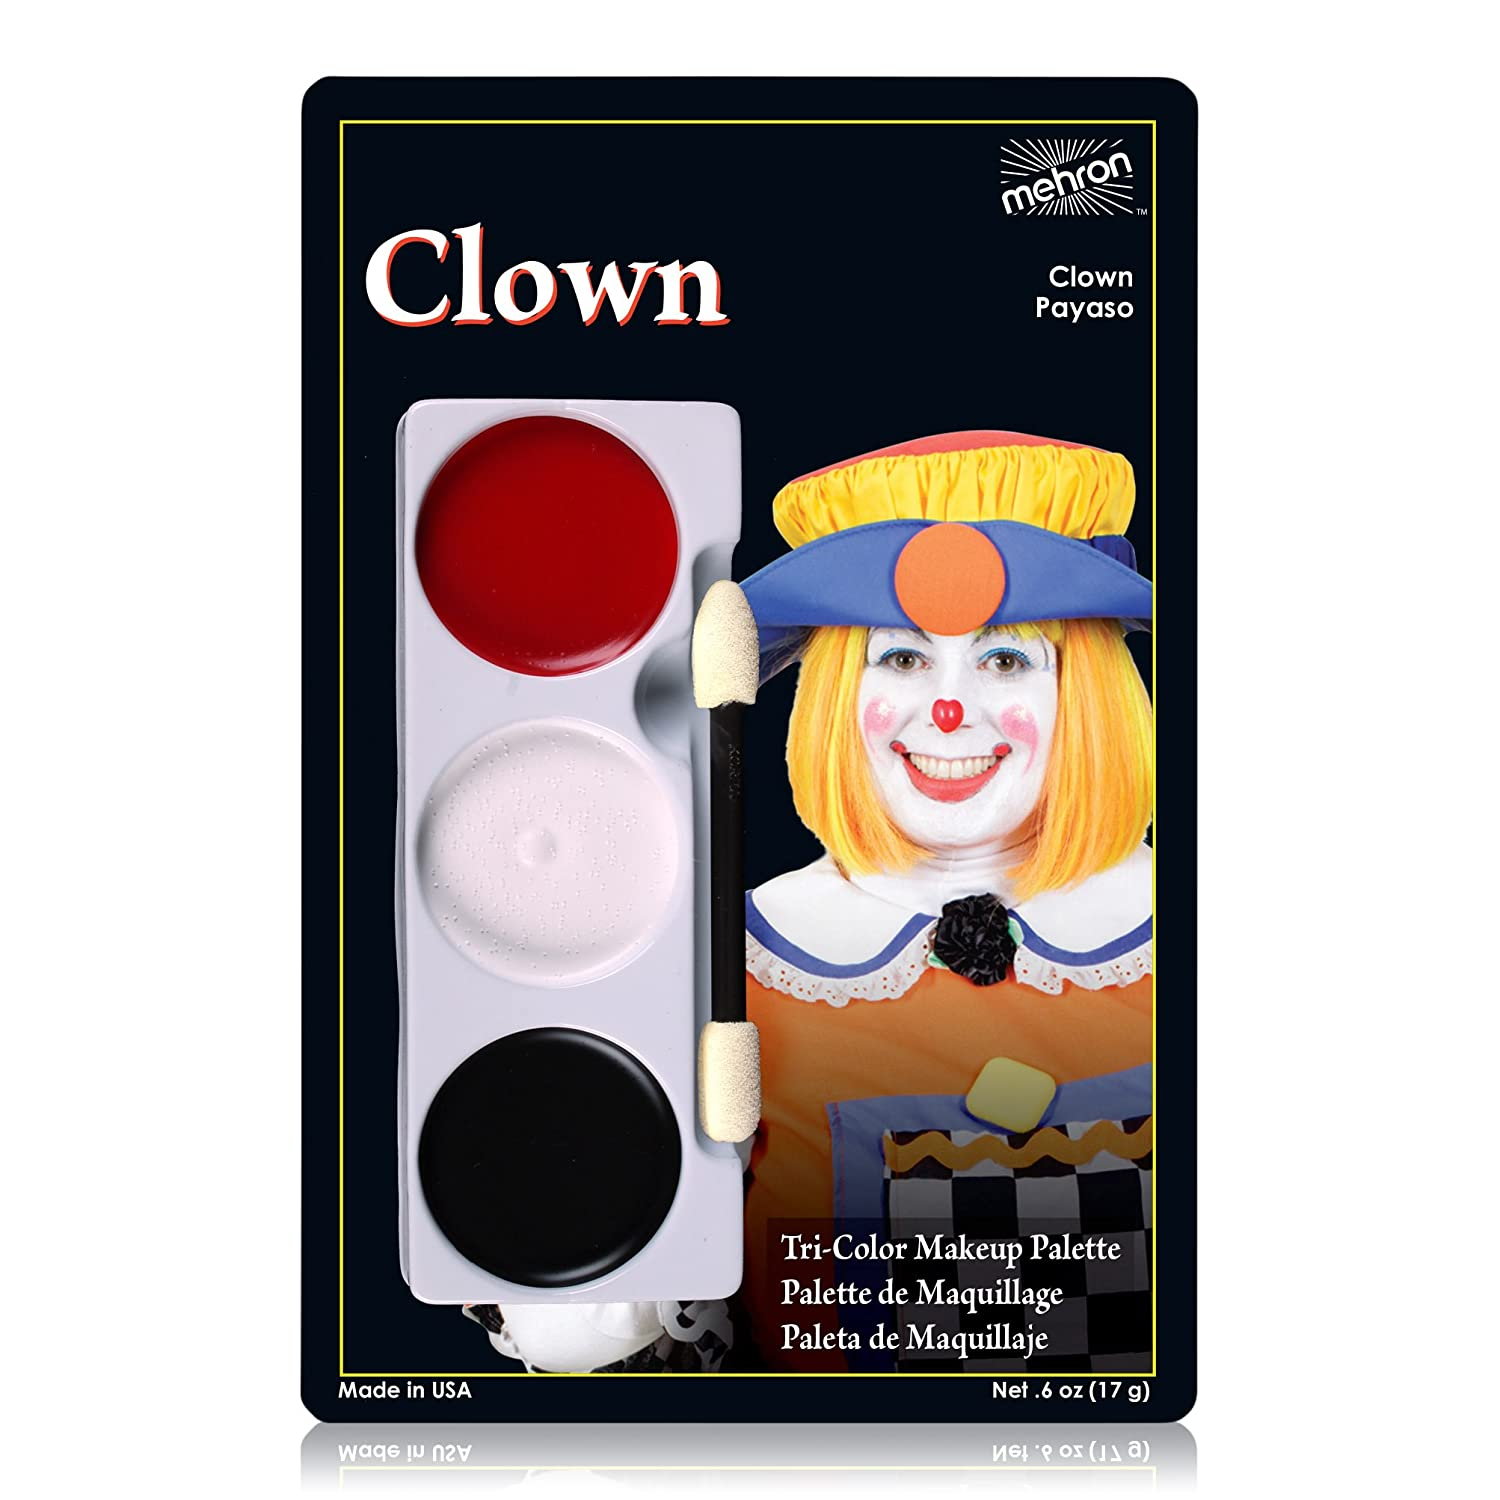 Amazon.com : Mehron Makeup Tri-Color Halloween Makeup Palette (CLOWN) : Beauty